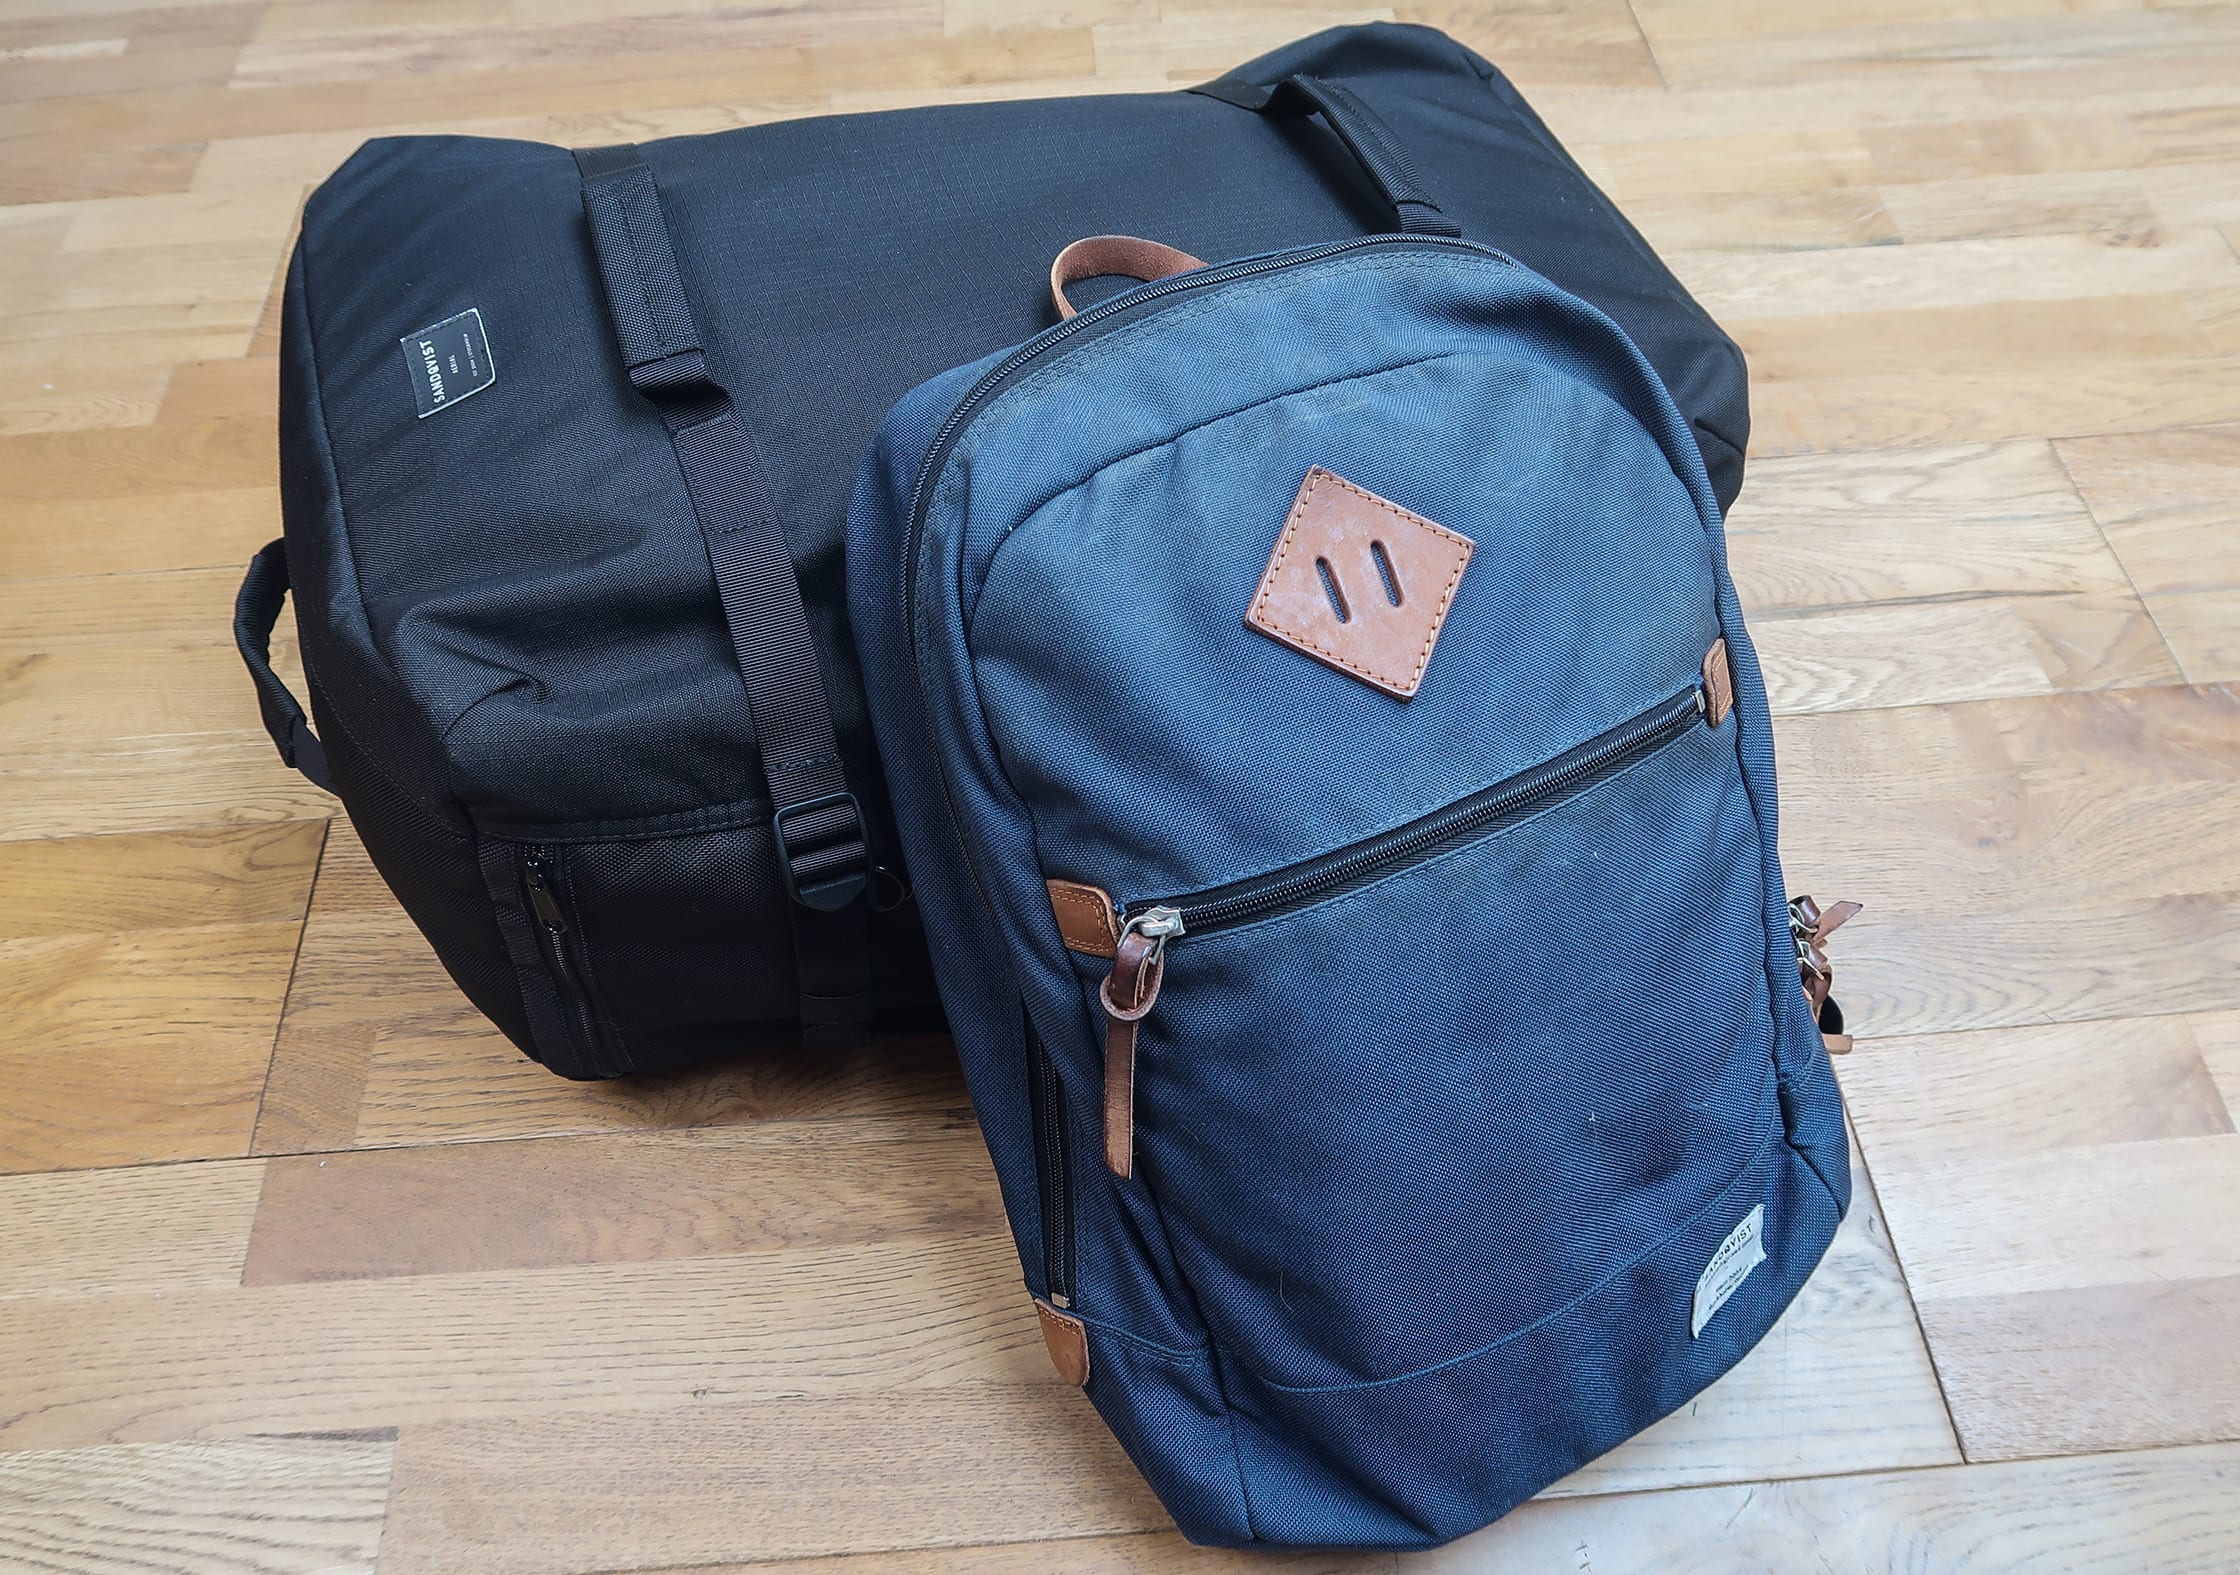 Sandqvist Zack and Uno Daypack